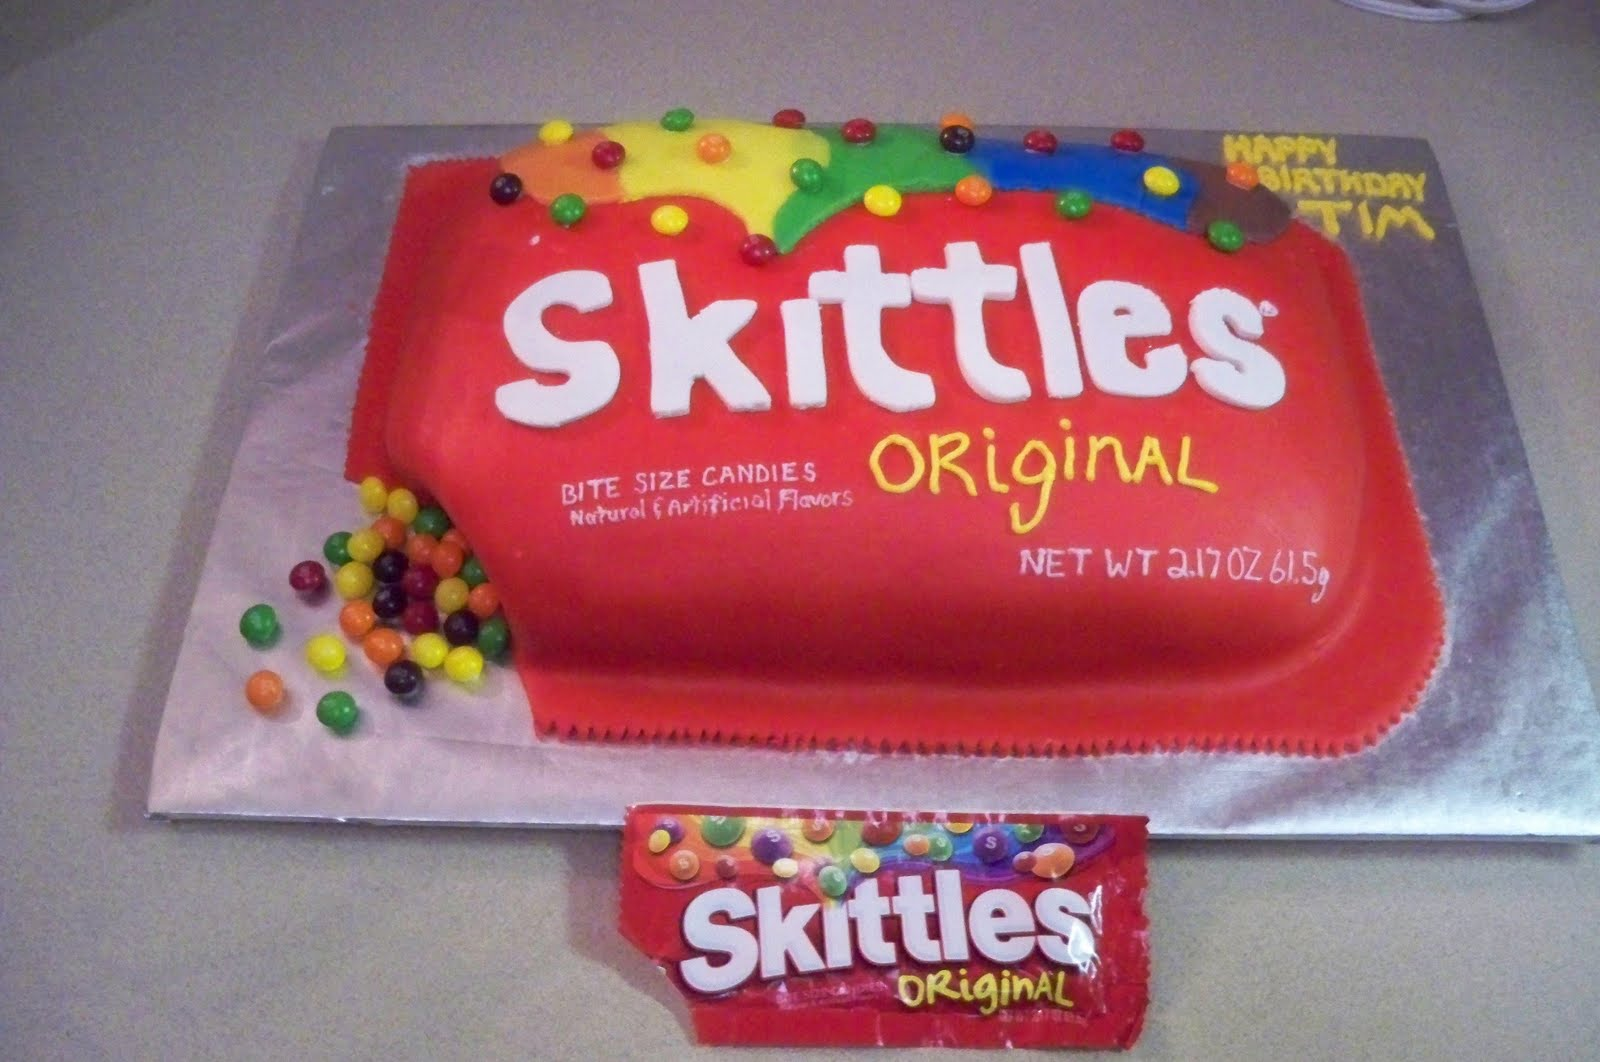 Cake recipes with skittles